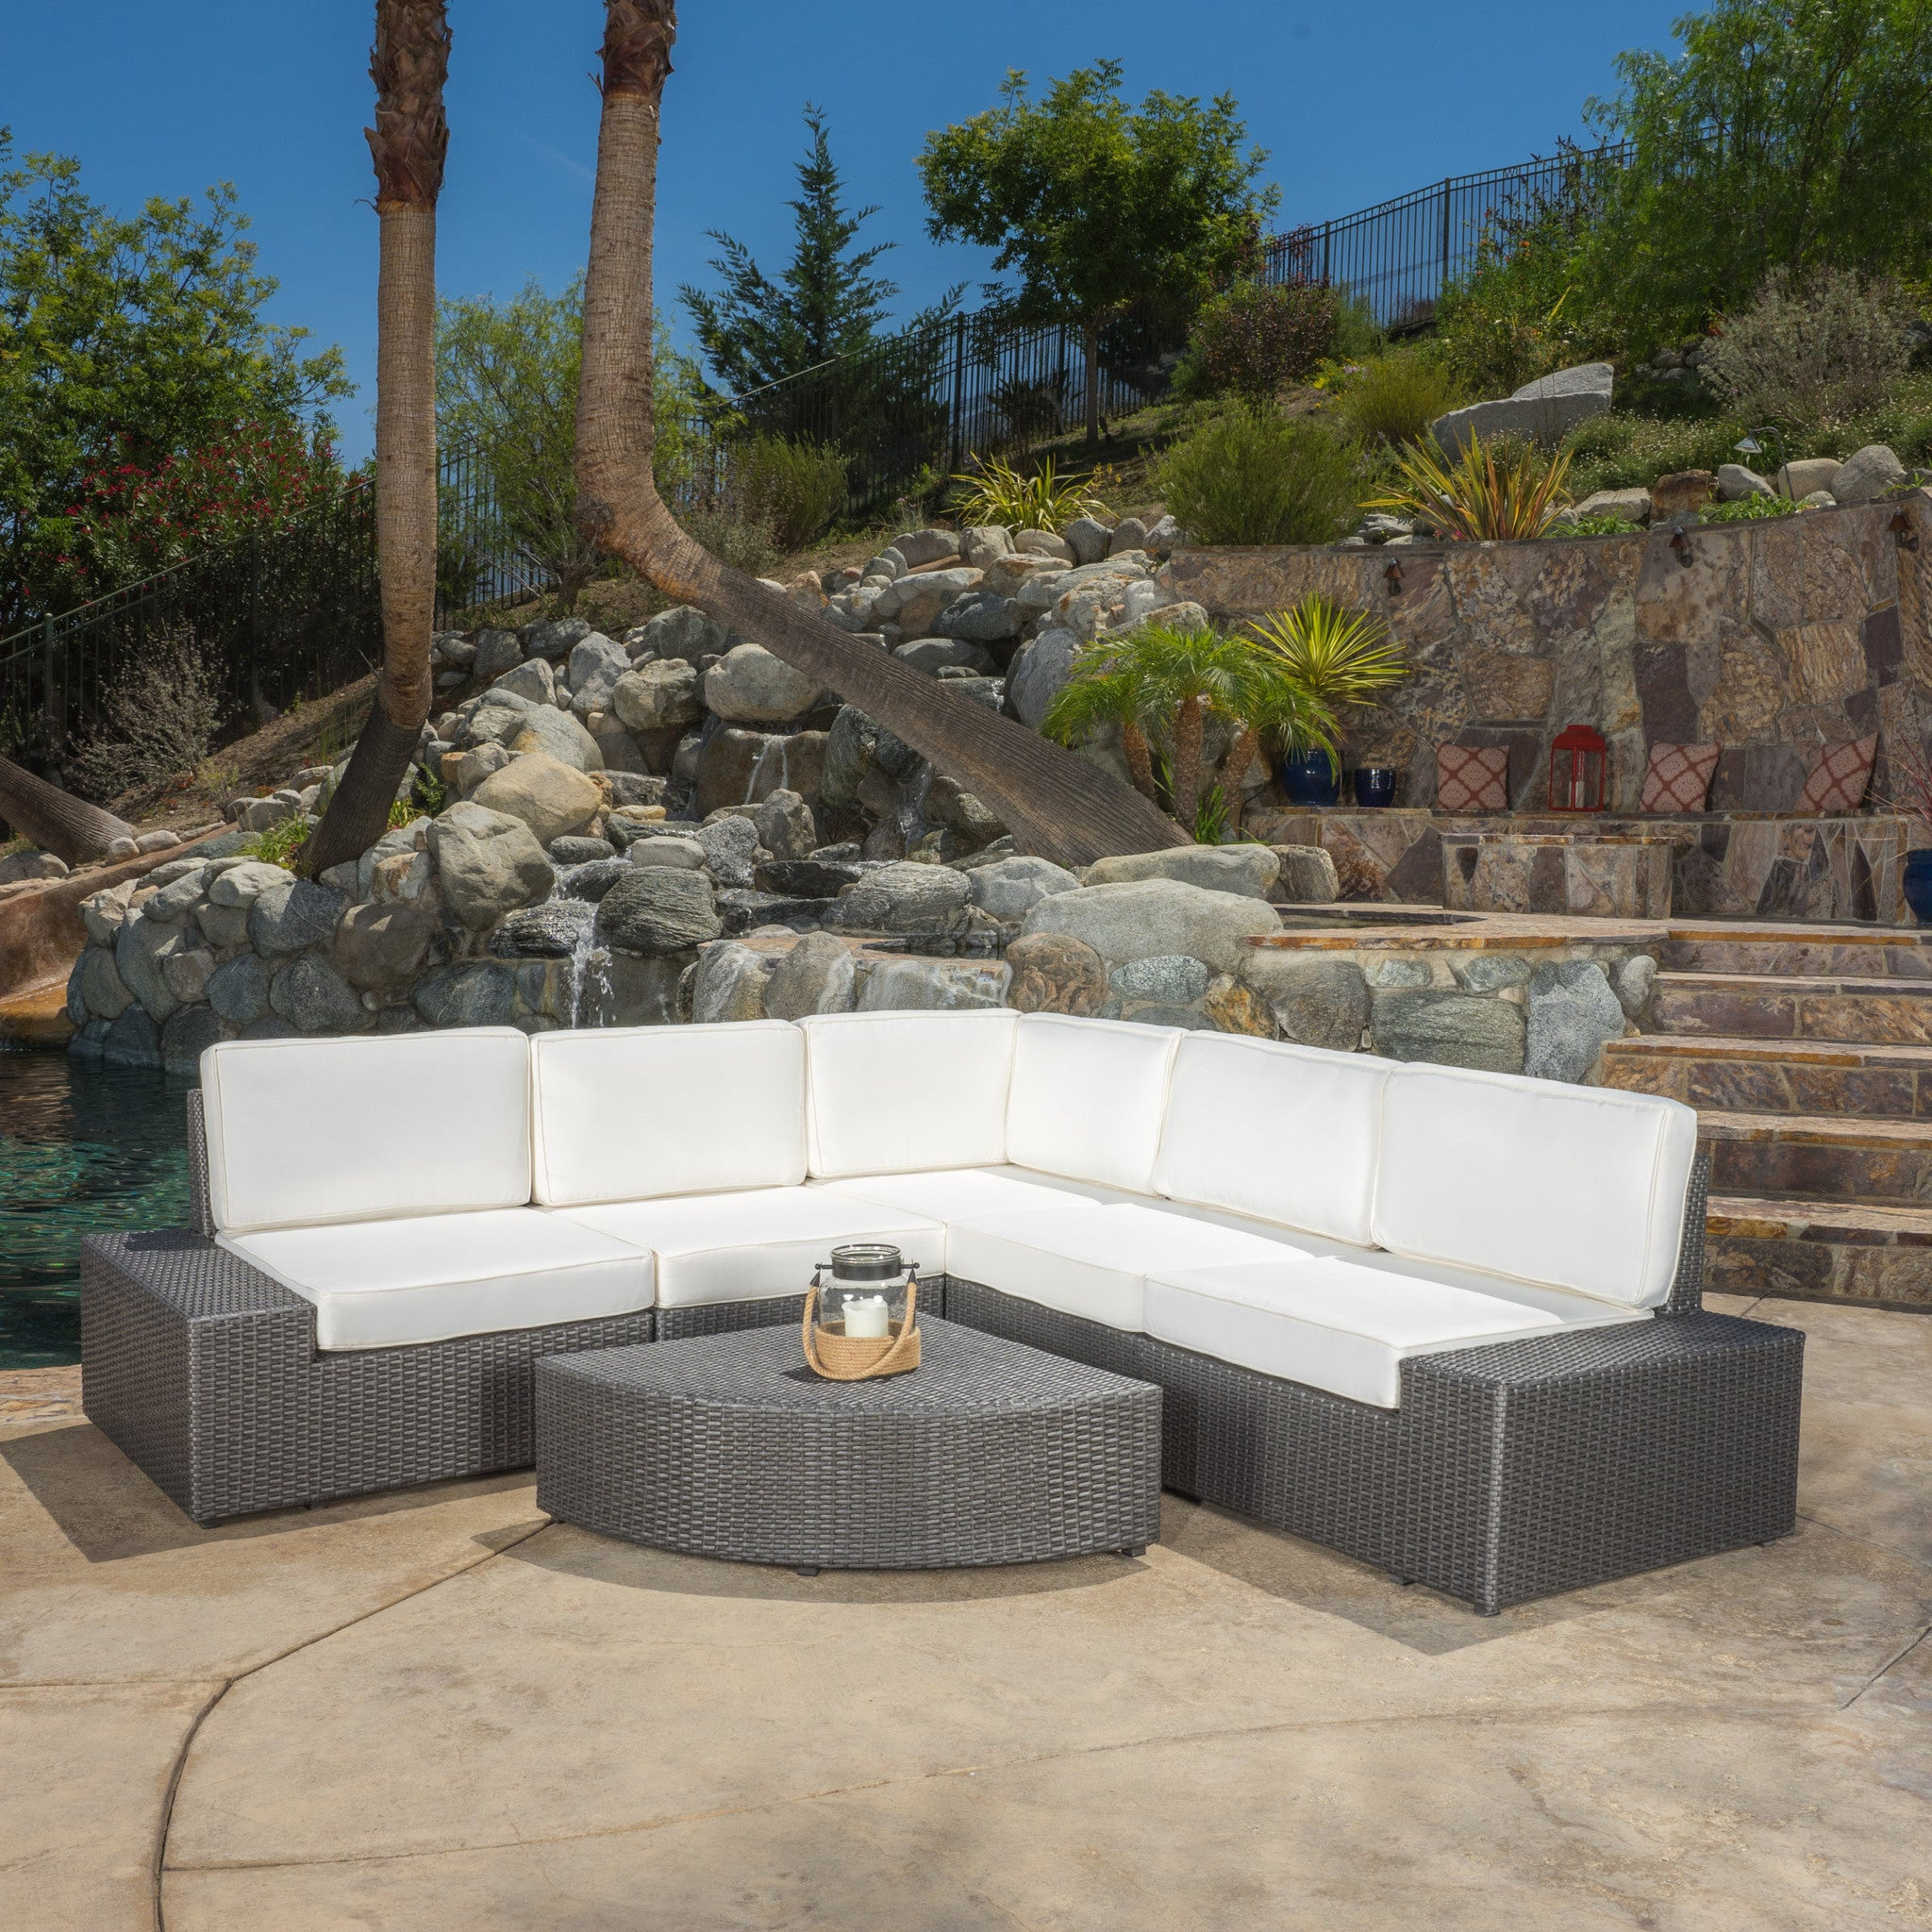 Reddington Outdoor Sofa Sectional Set foto